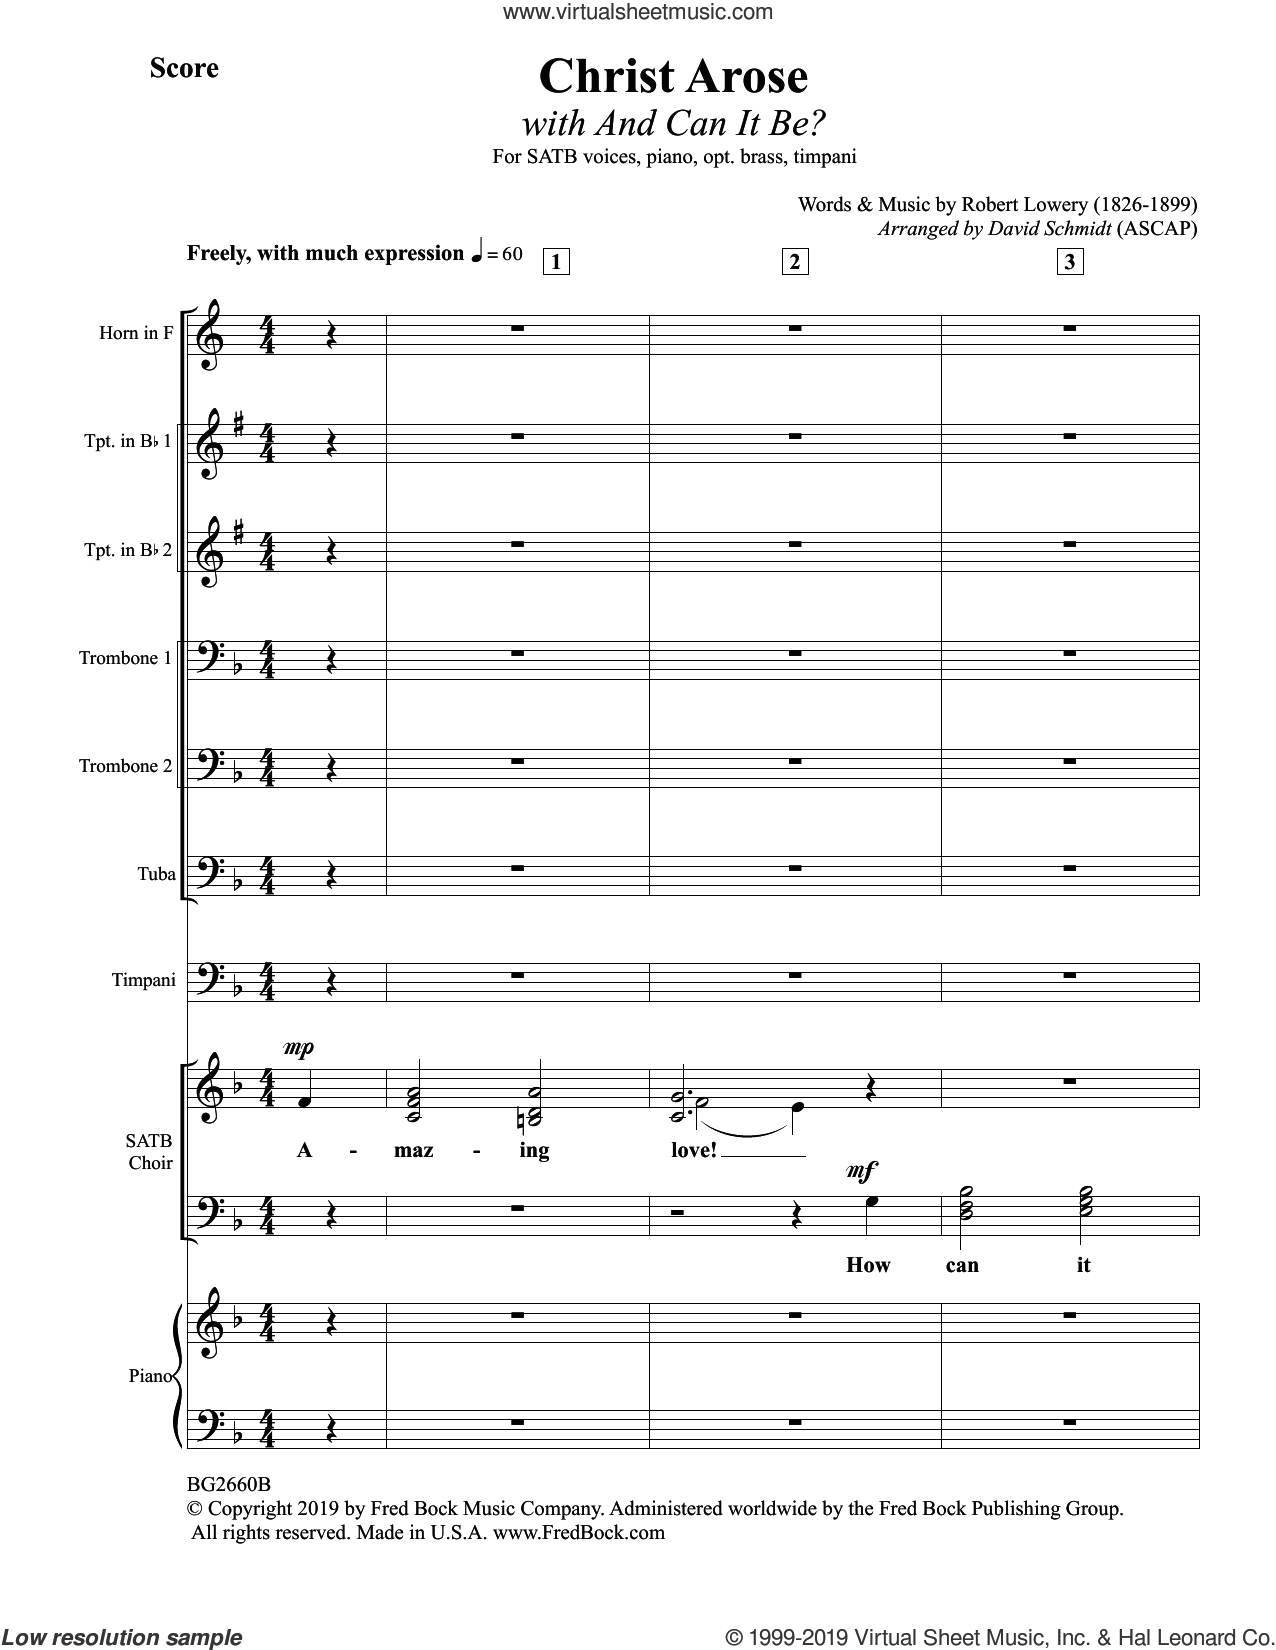 Christ Arose (with And Can It Be?) (arr. David Schmidt) (COMPLETE) sheet music for orchestra by Robert Lowry and David Schmidt, intermediate skill level